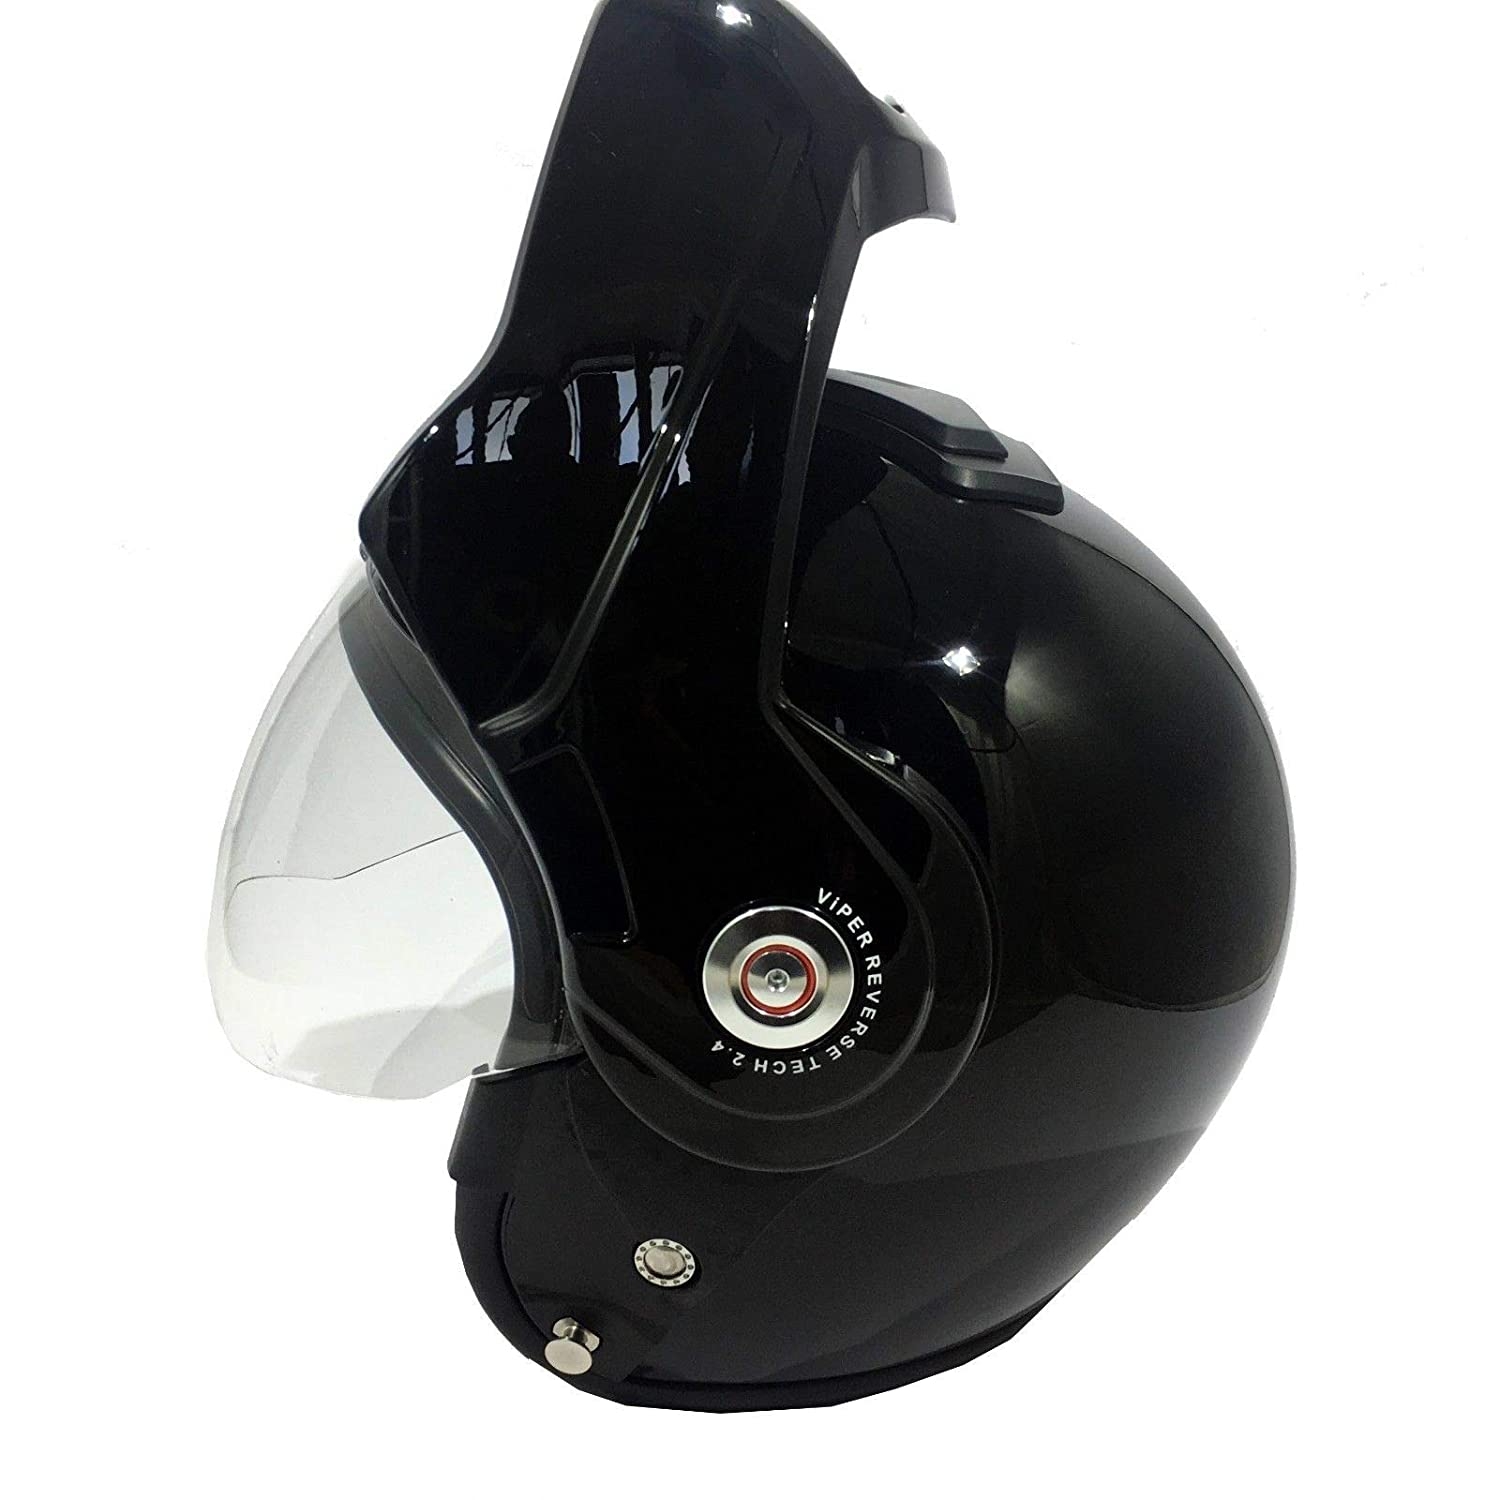 GLOSS BLACK NEW ADULT MOTORBIKE VIPER RS202 REVERSE FLIP FRONT CRASH HELMET Motorcycle Moped Scooter Touring Sports Racing ECE Approve Open Full Face Modular Helmet